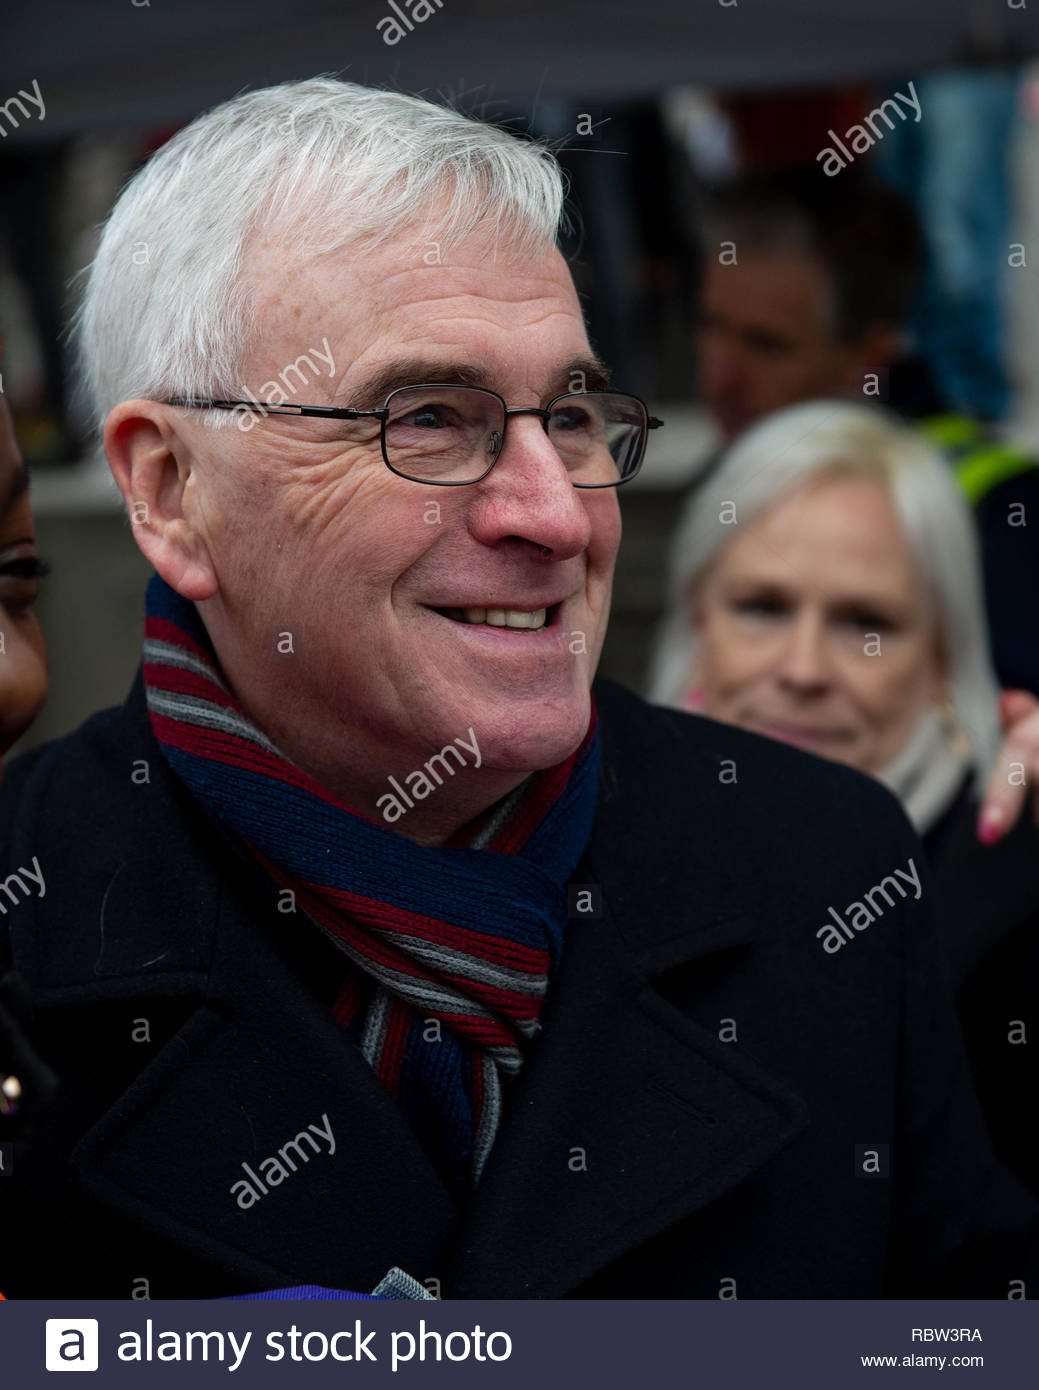 Shadow Chancellor John McDonnell arrives to give his speech. London, UK. 12th January, 2019. People from all over the Uk come to London to call for an end to austerity, and for a General Election. London, Great Britain, 12 Jan 2019  Credit: David Nash/Alamy Live News - Stock Image